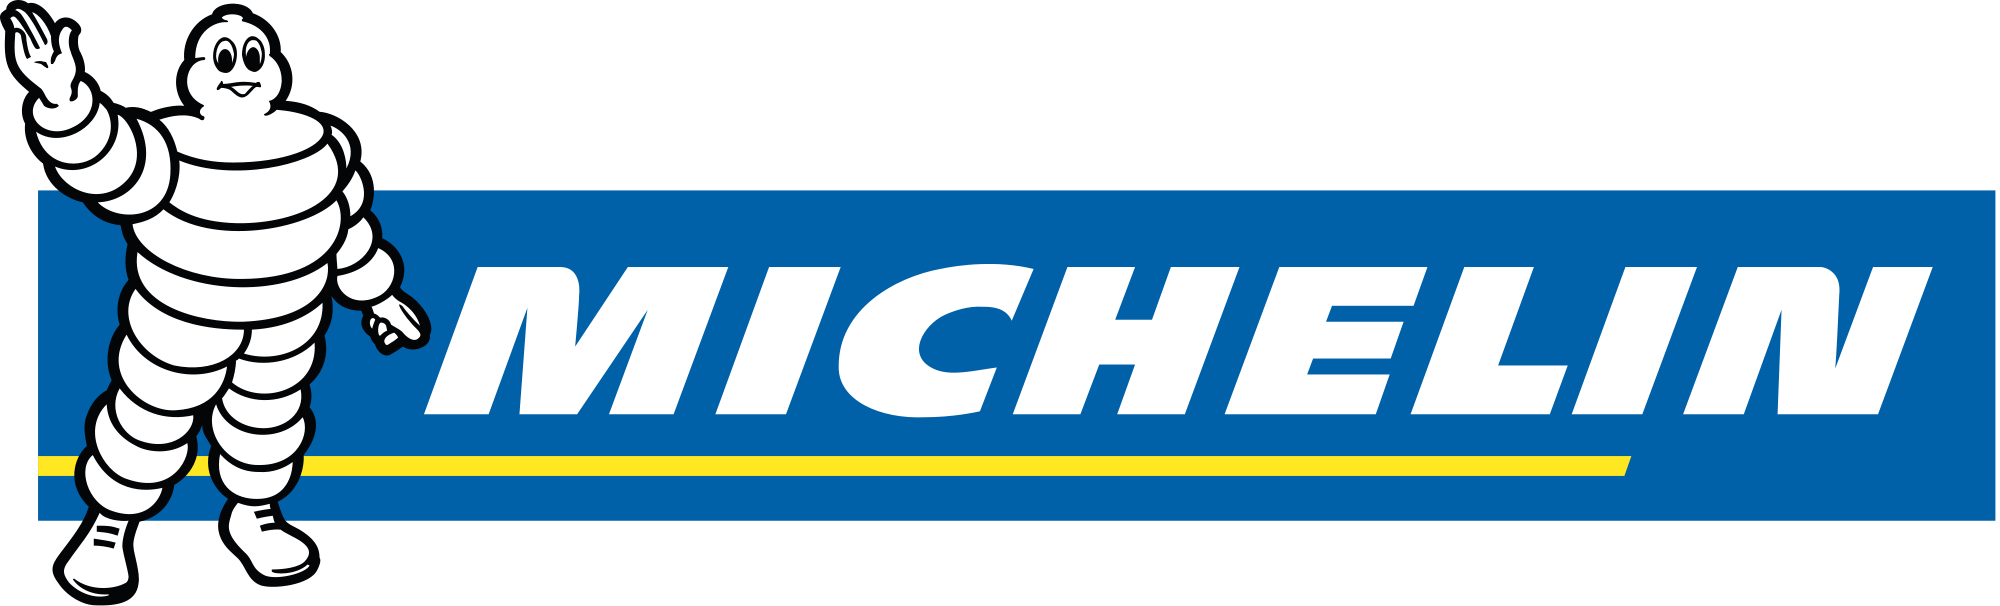 Michelin Brand Logo transparent PNG.